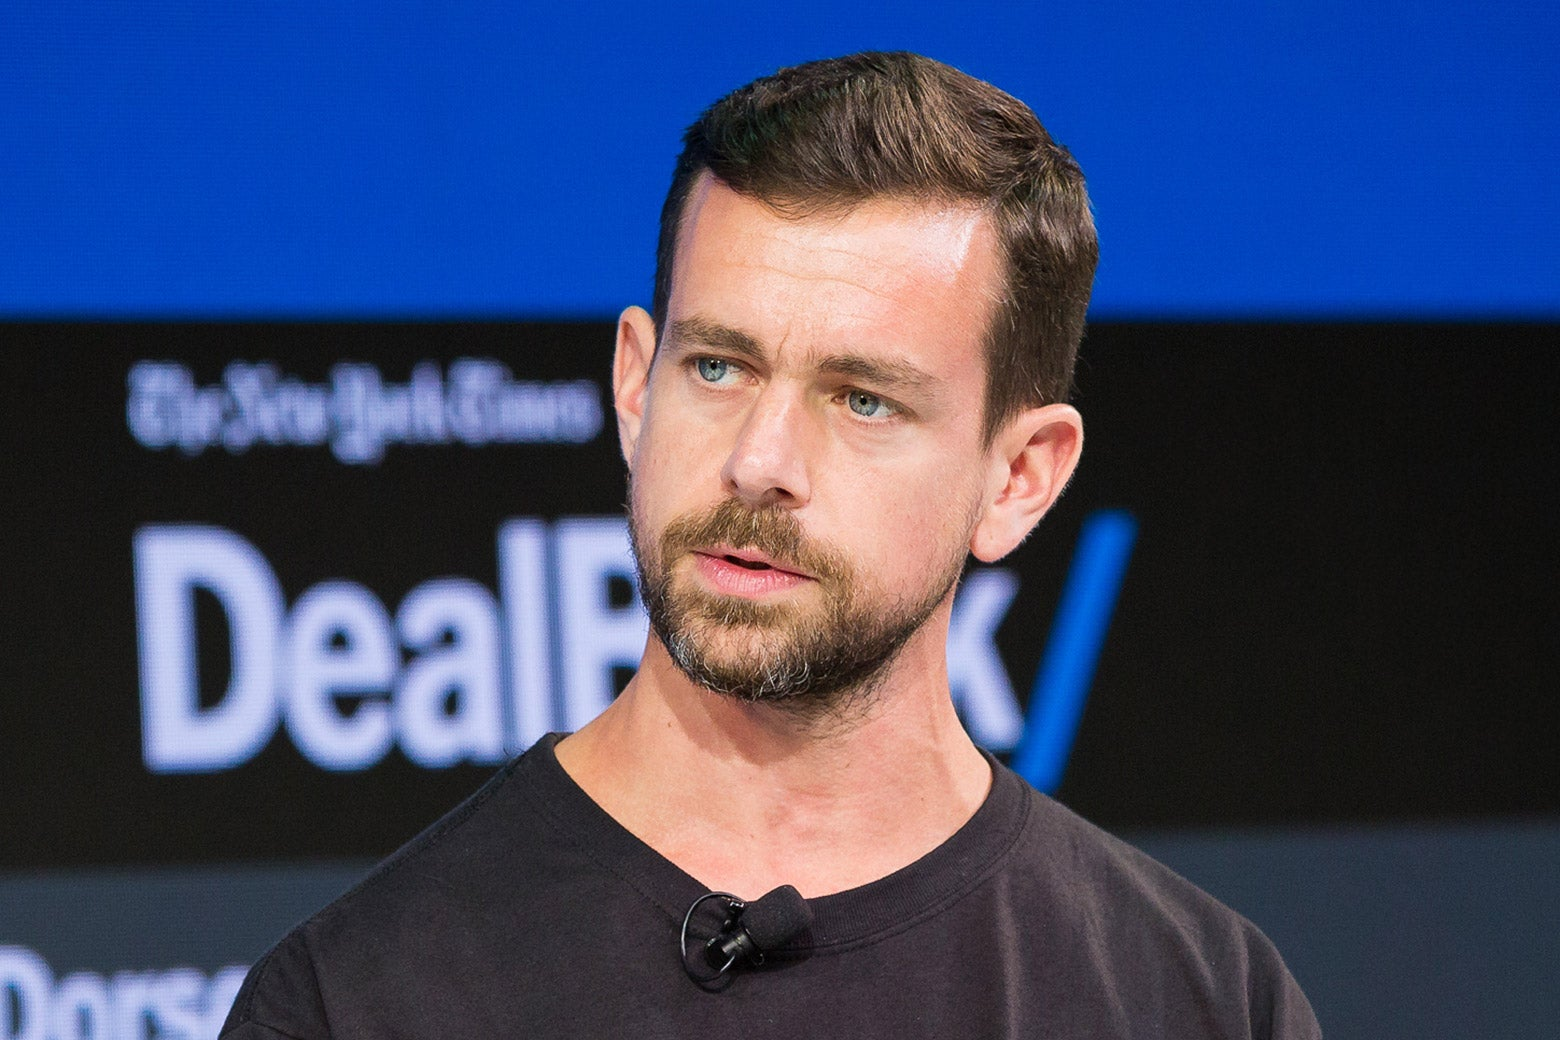 Jack Dorsey speaks during the New York Times 2017 DealBook Conference on Nov. 9.